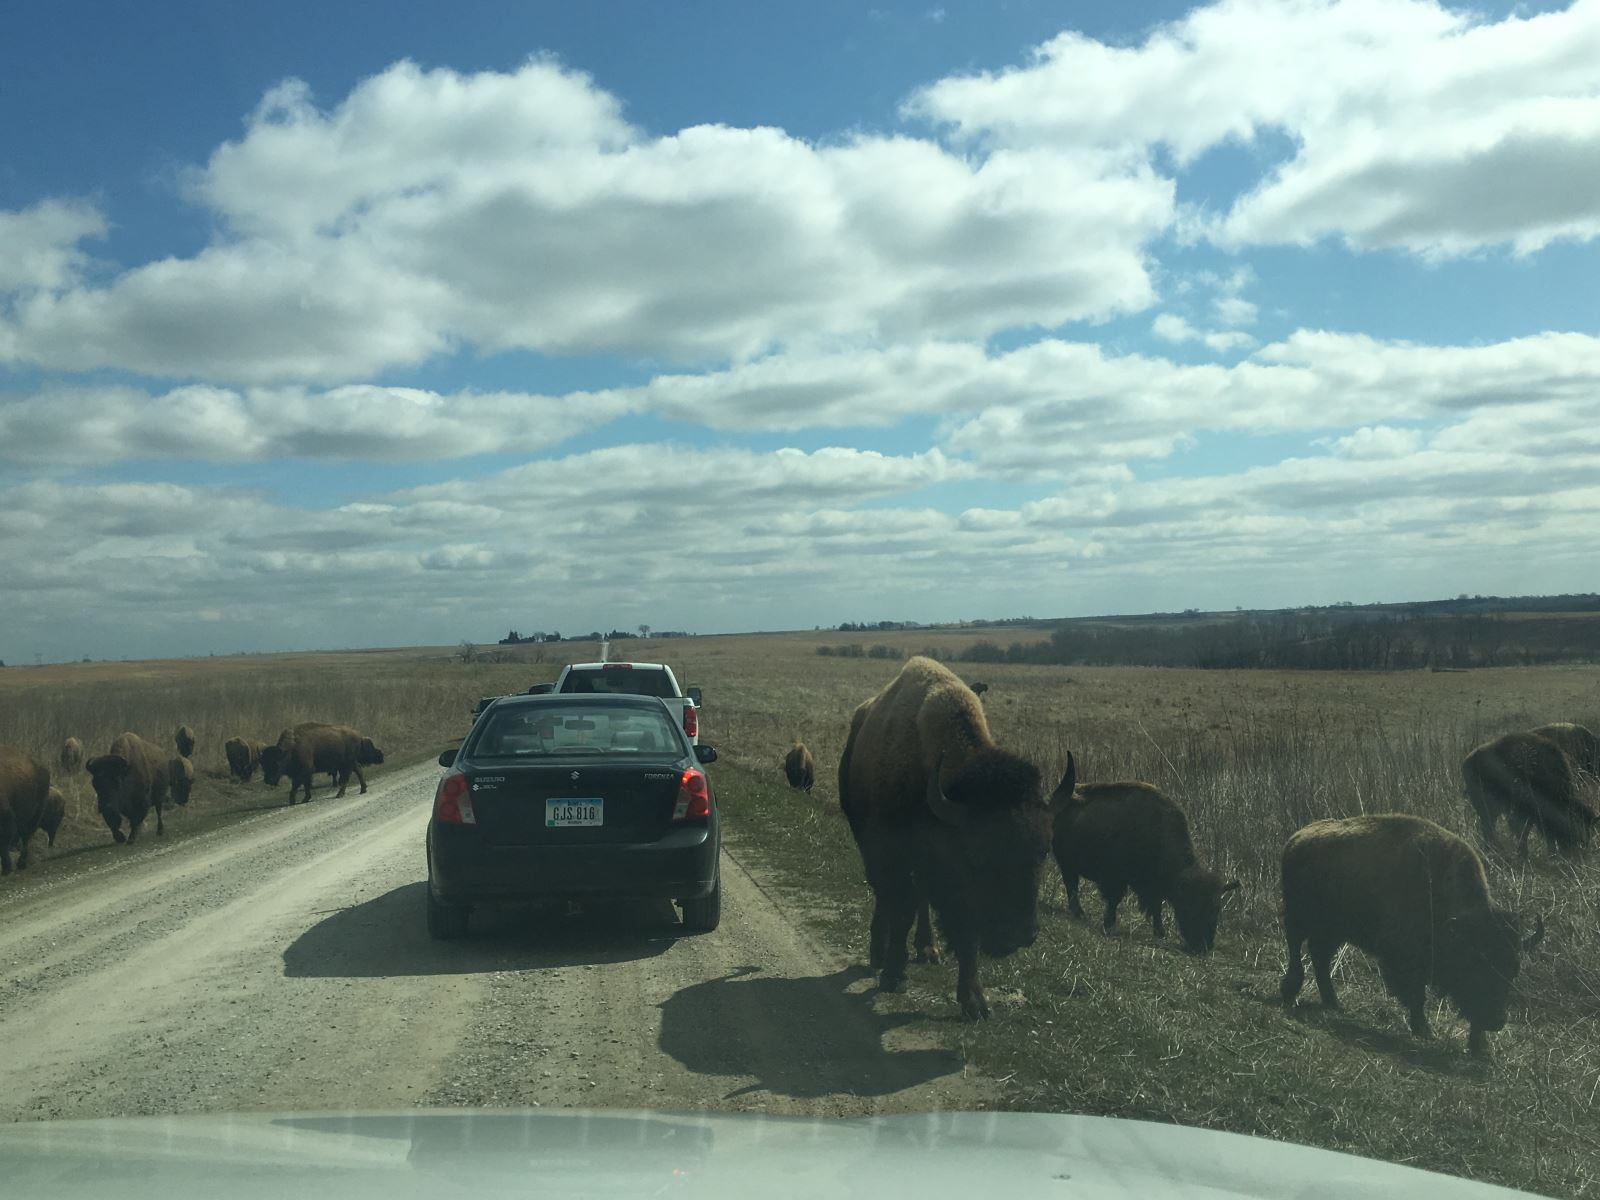 Buffaloes on the road at the Neal Smith Wildlife Refuge